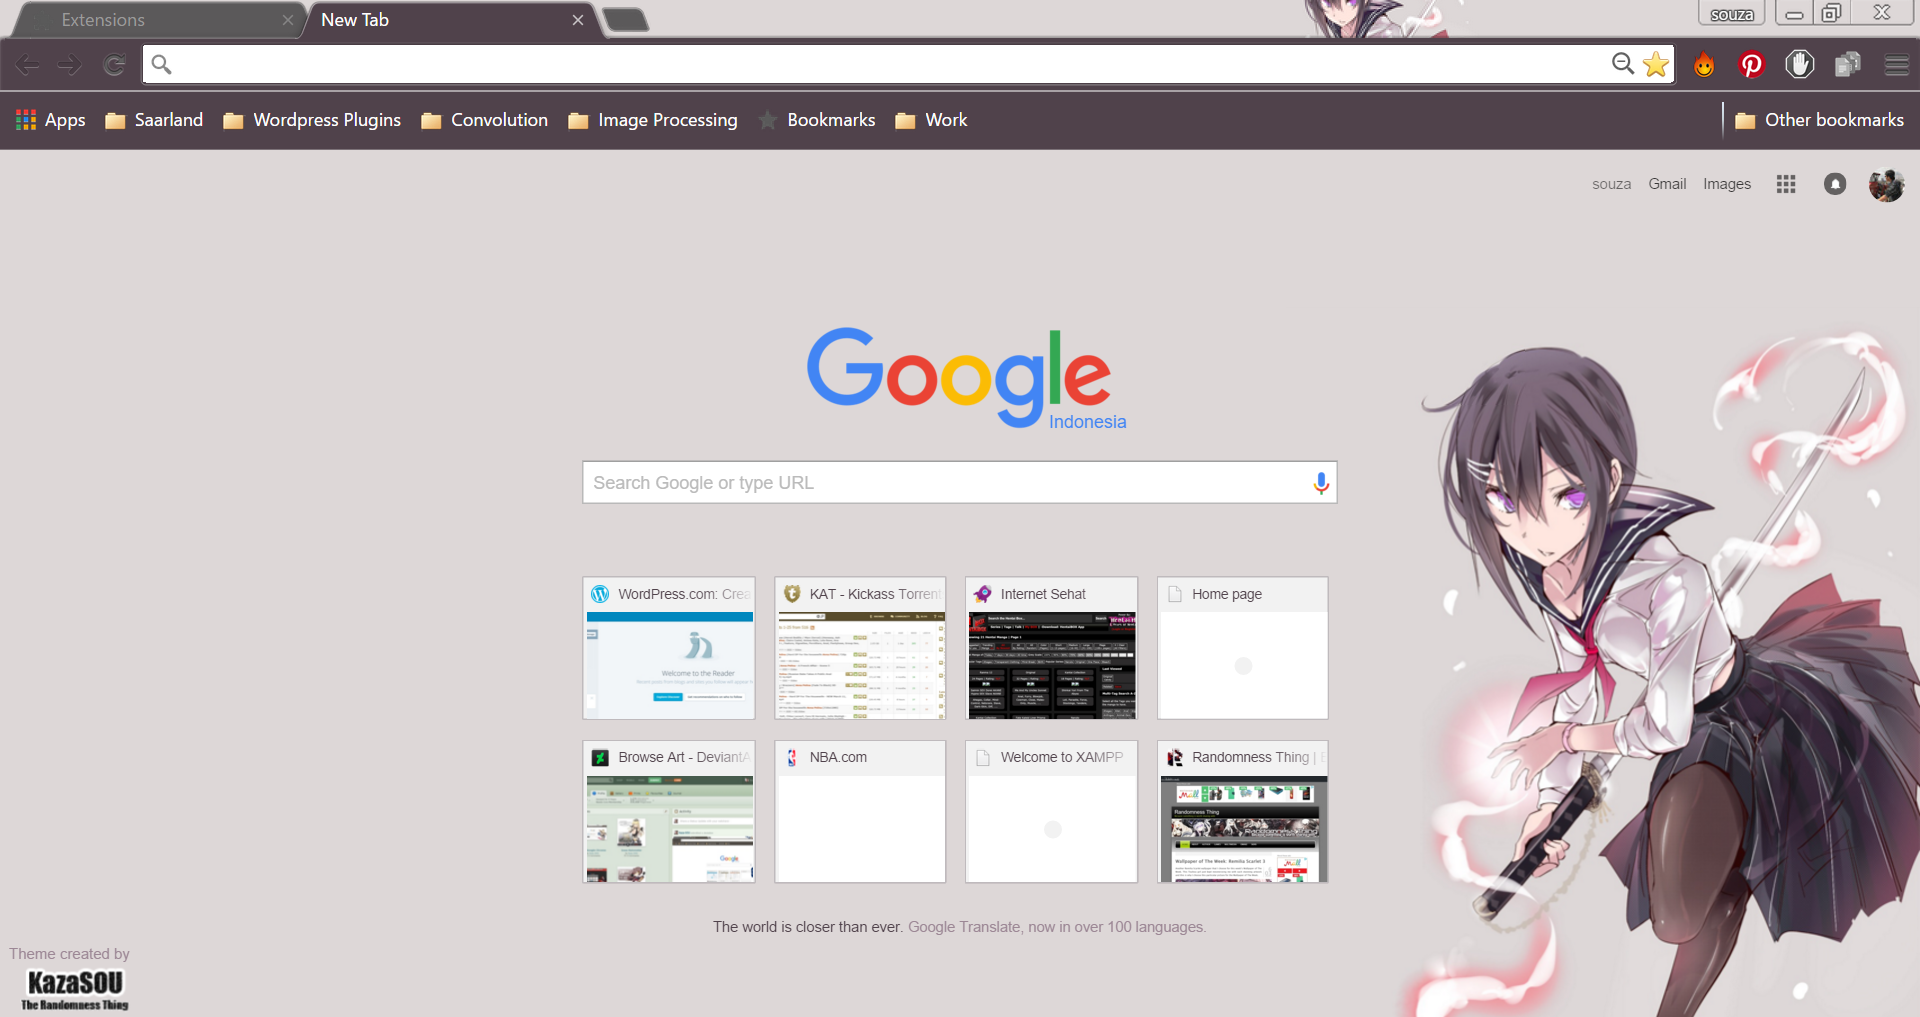 Google themes nba - You Know I Like Girls Wielding Weapons And I M Happy To Present You Another Google Chrome Themesthe